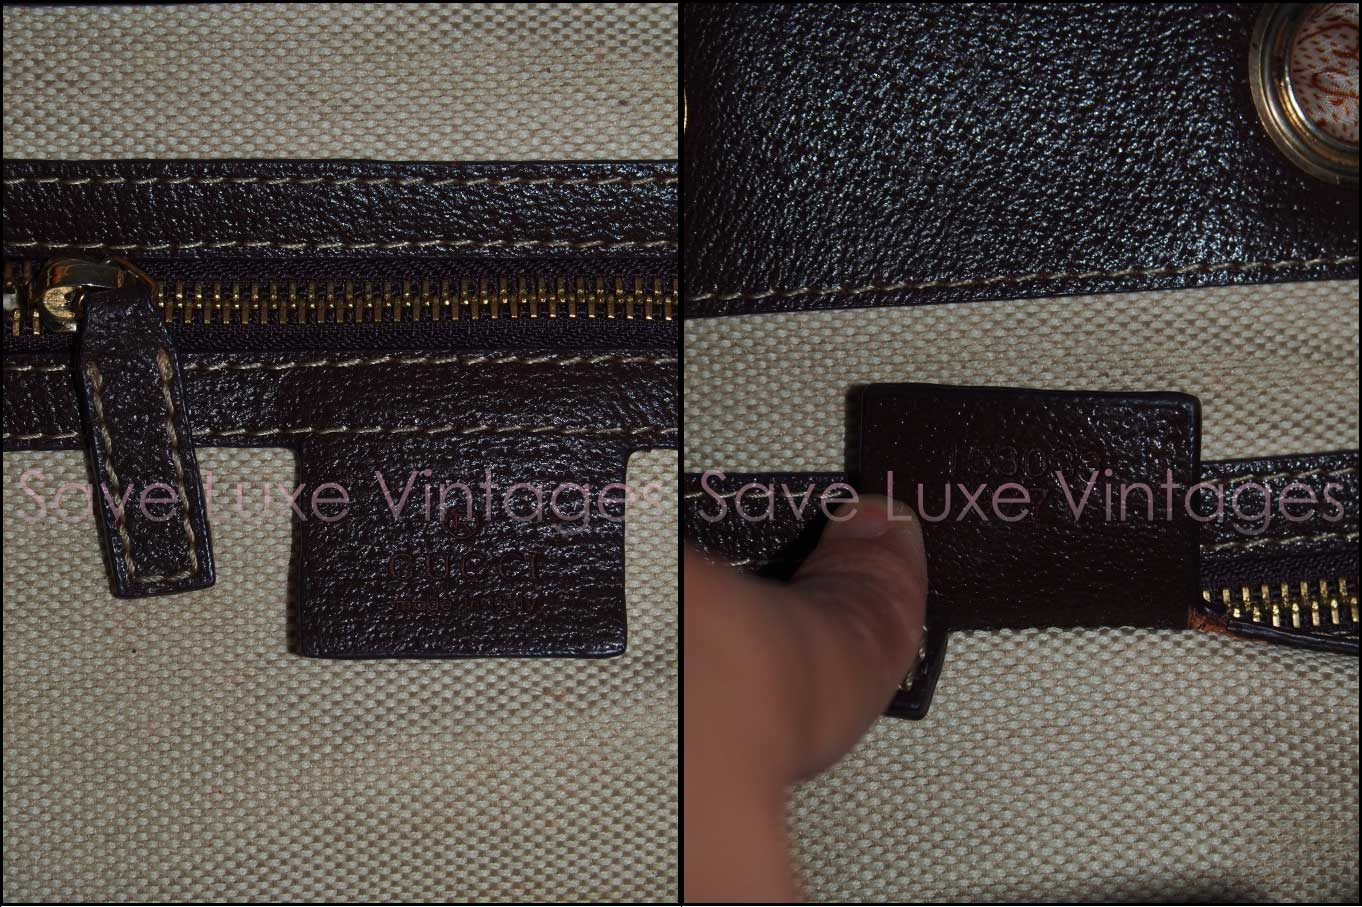 2fb5630bf Fake Gucci Positano Monogram Canvas bag with serial number 153033 9771 -  Gucci Serial Number Check